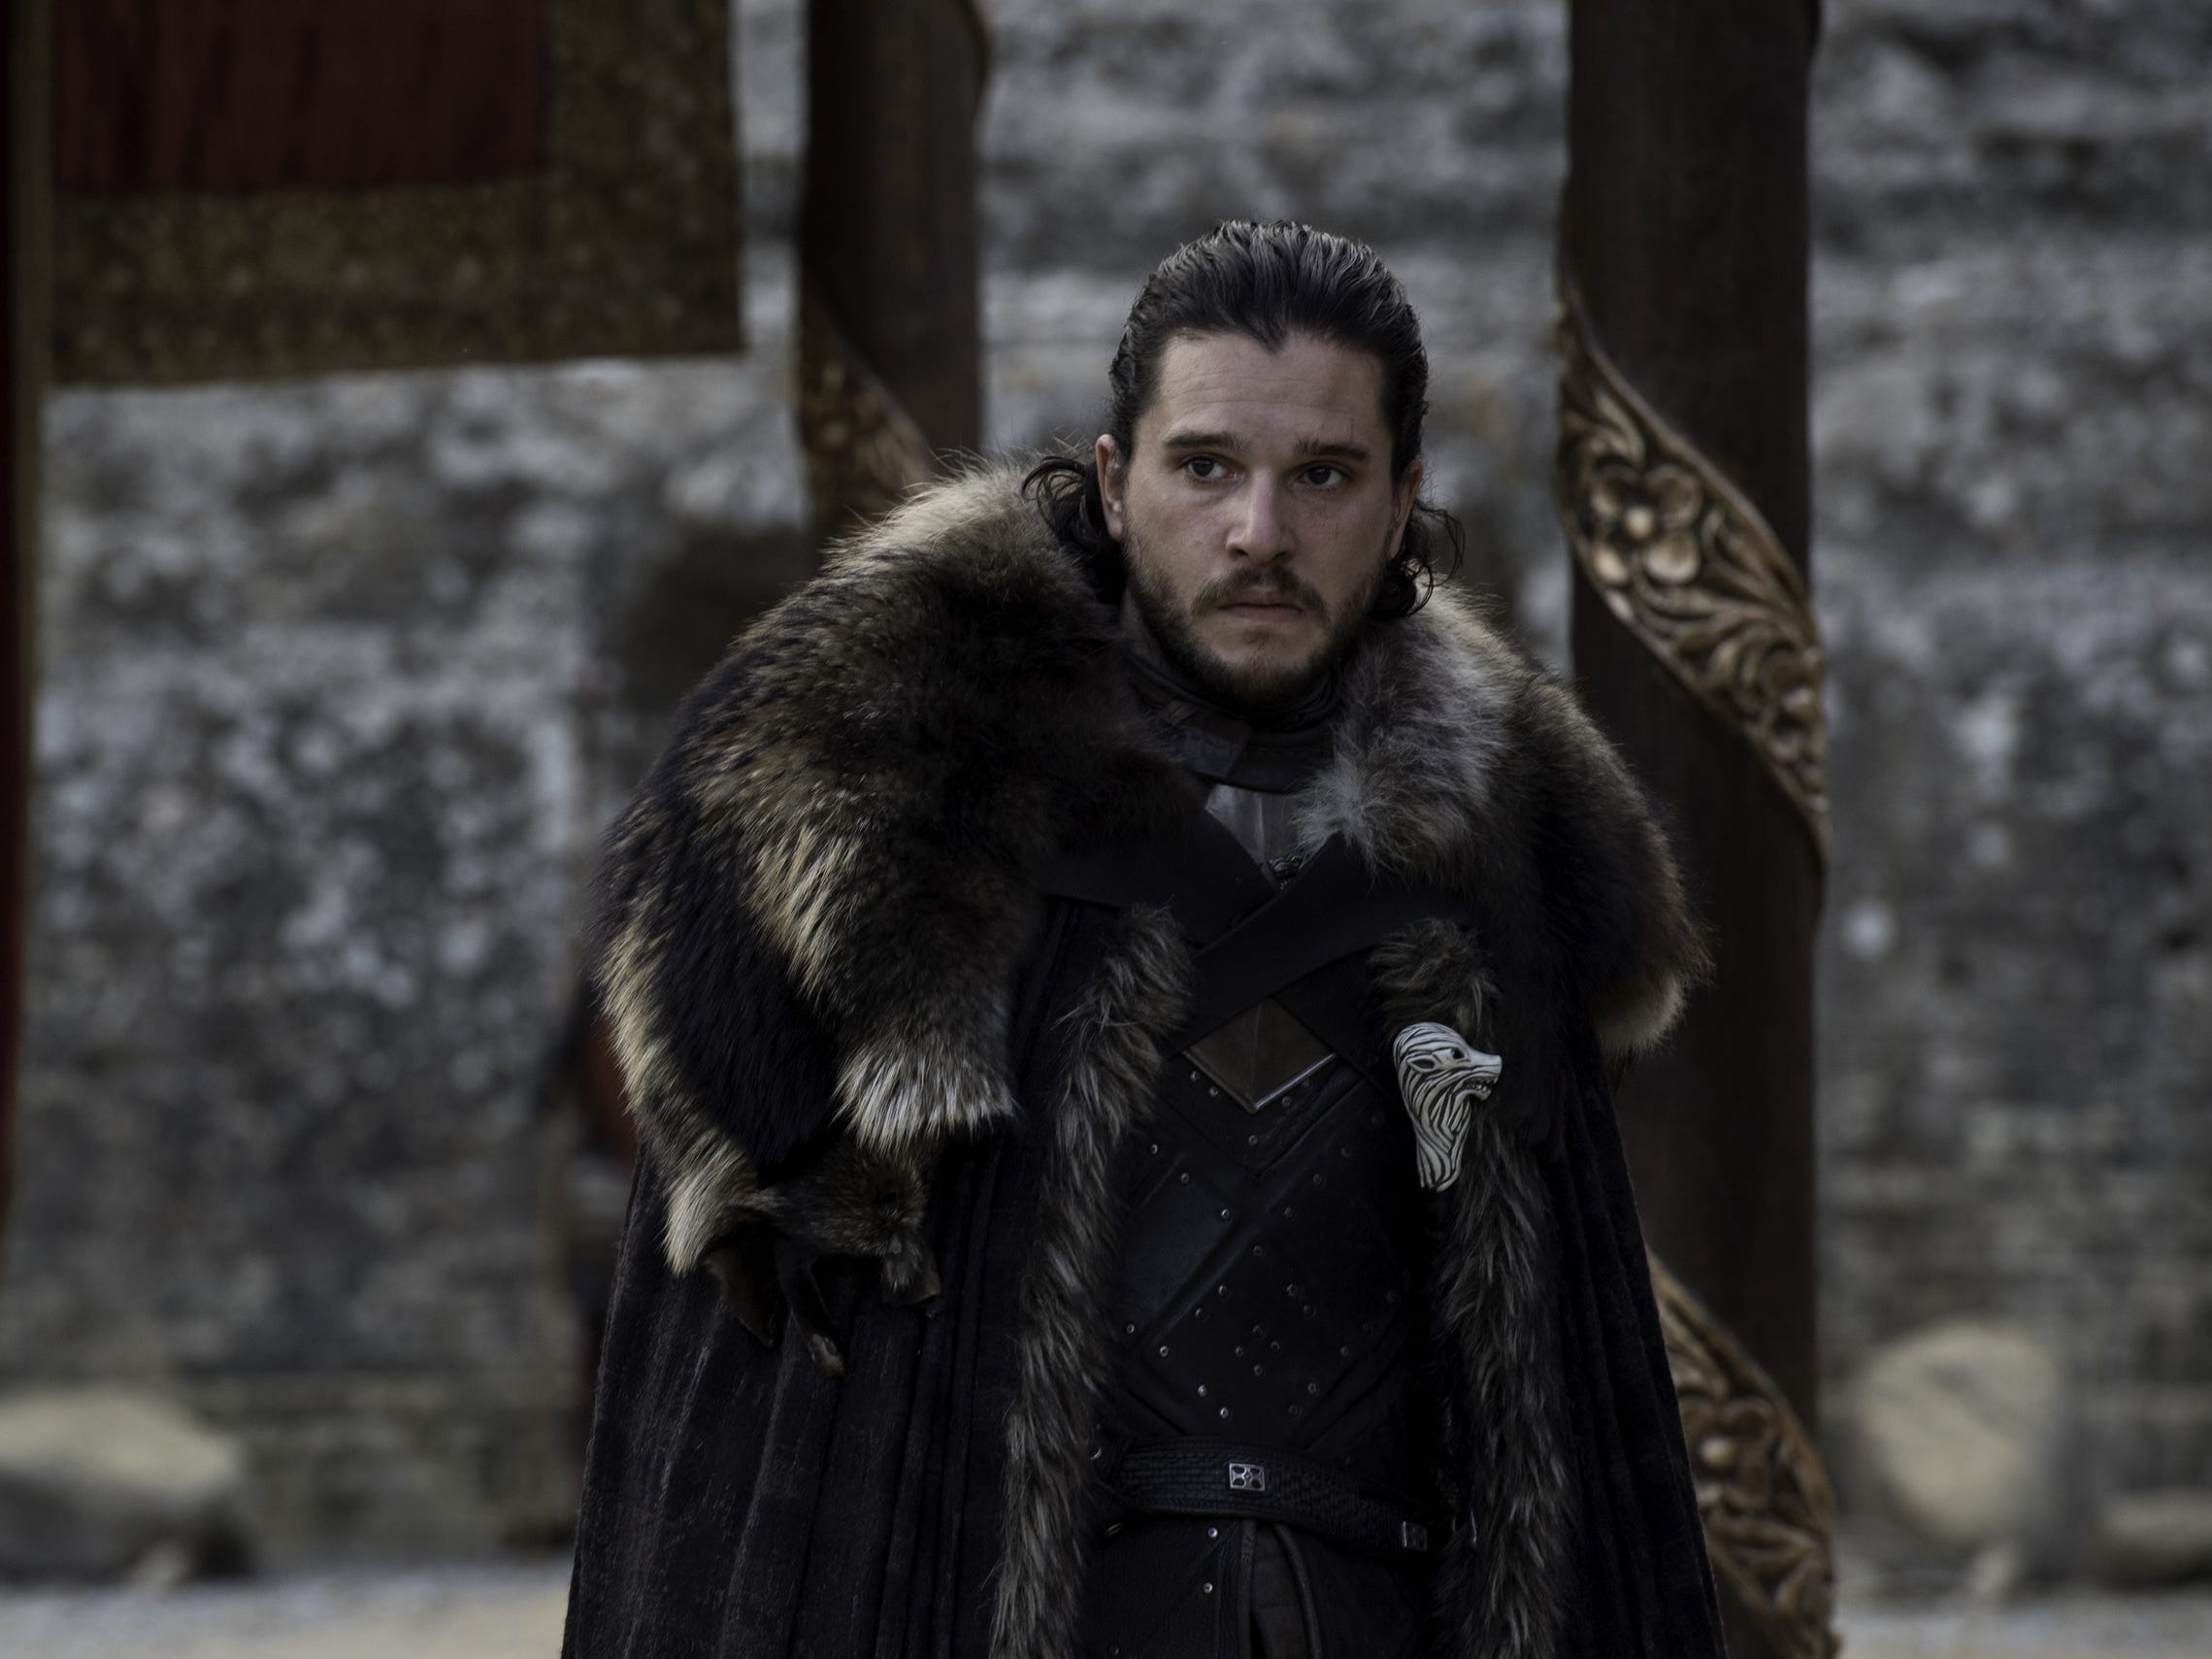 'Game of Thrones' director David Nutter gives hints about Season 8 in Reddit AMA